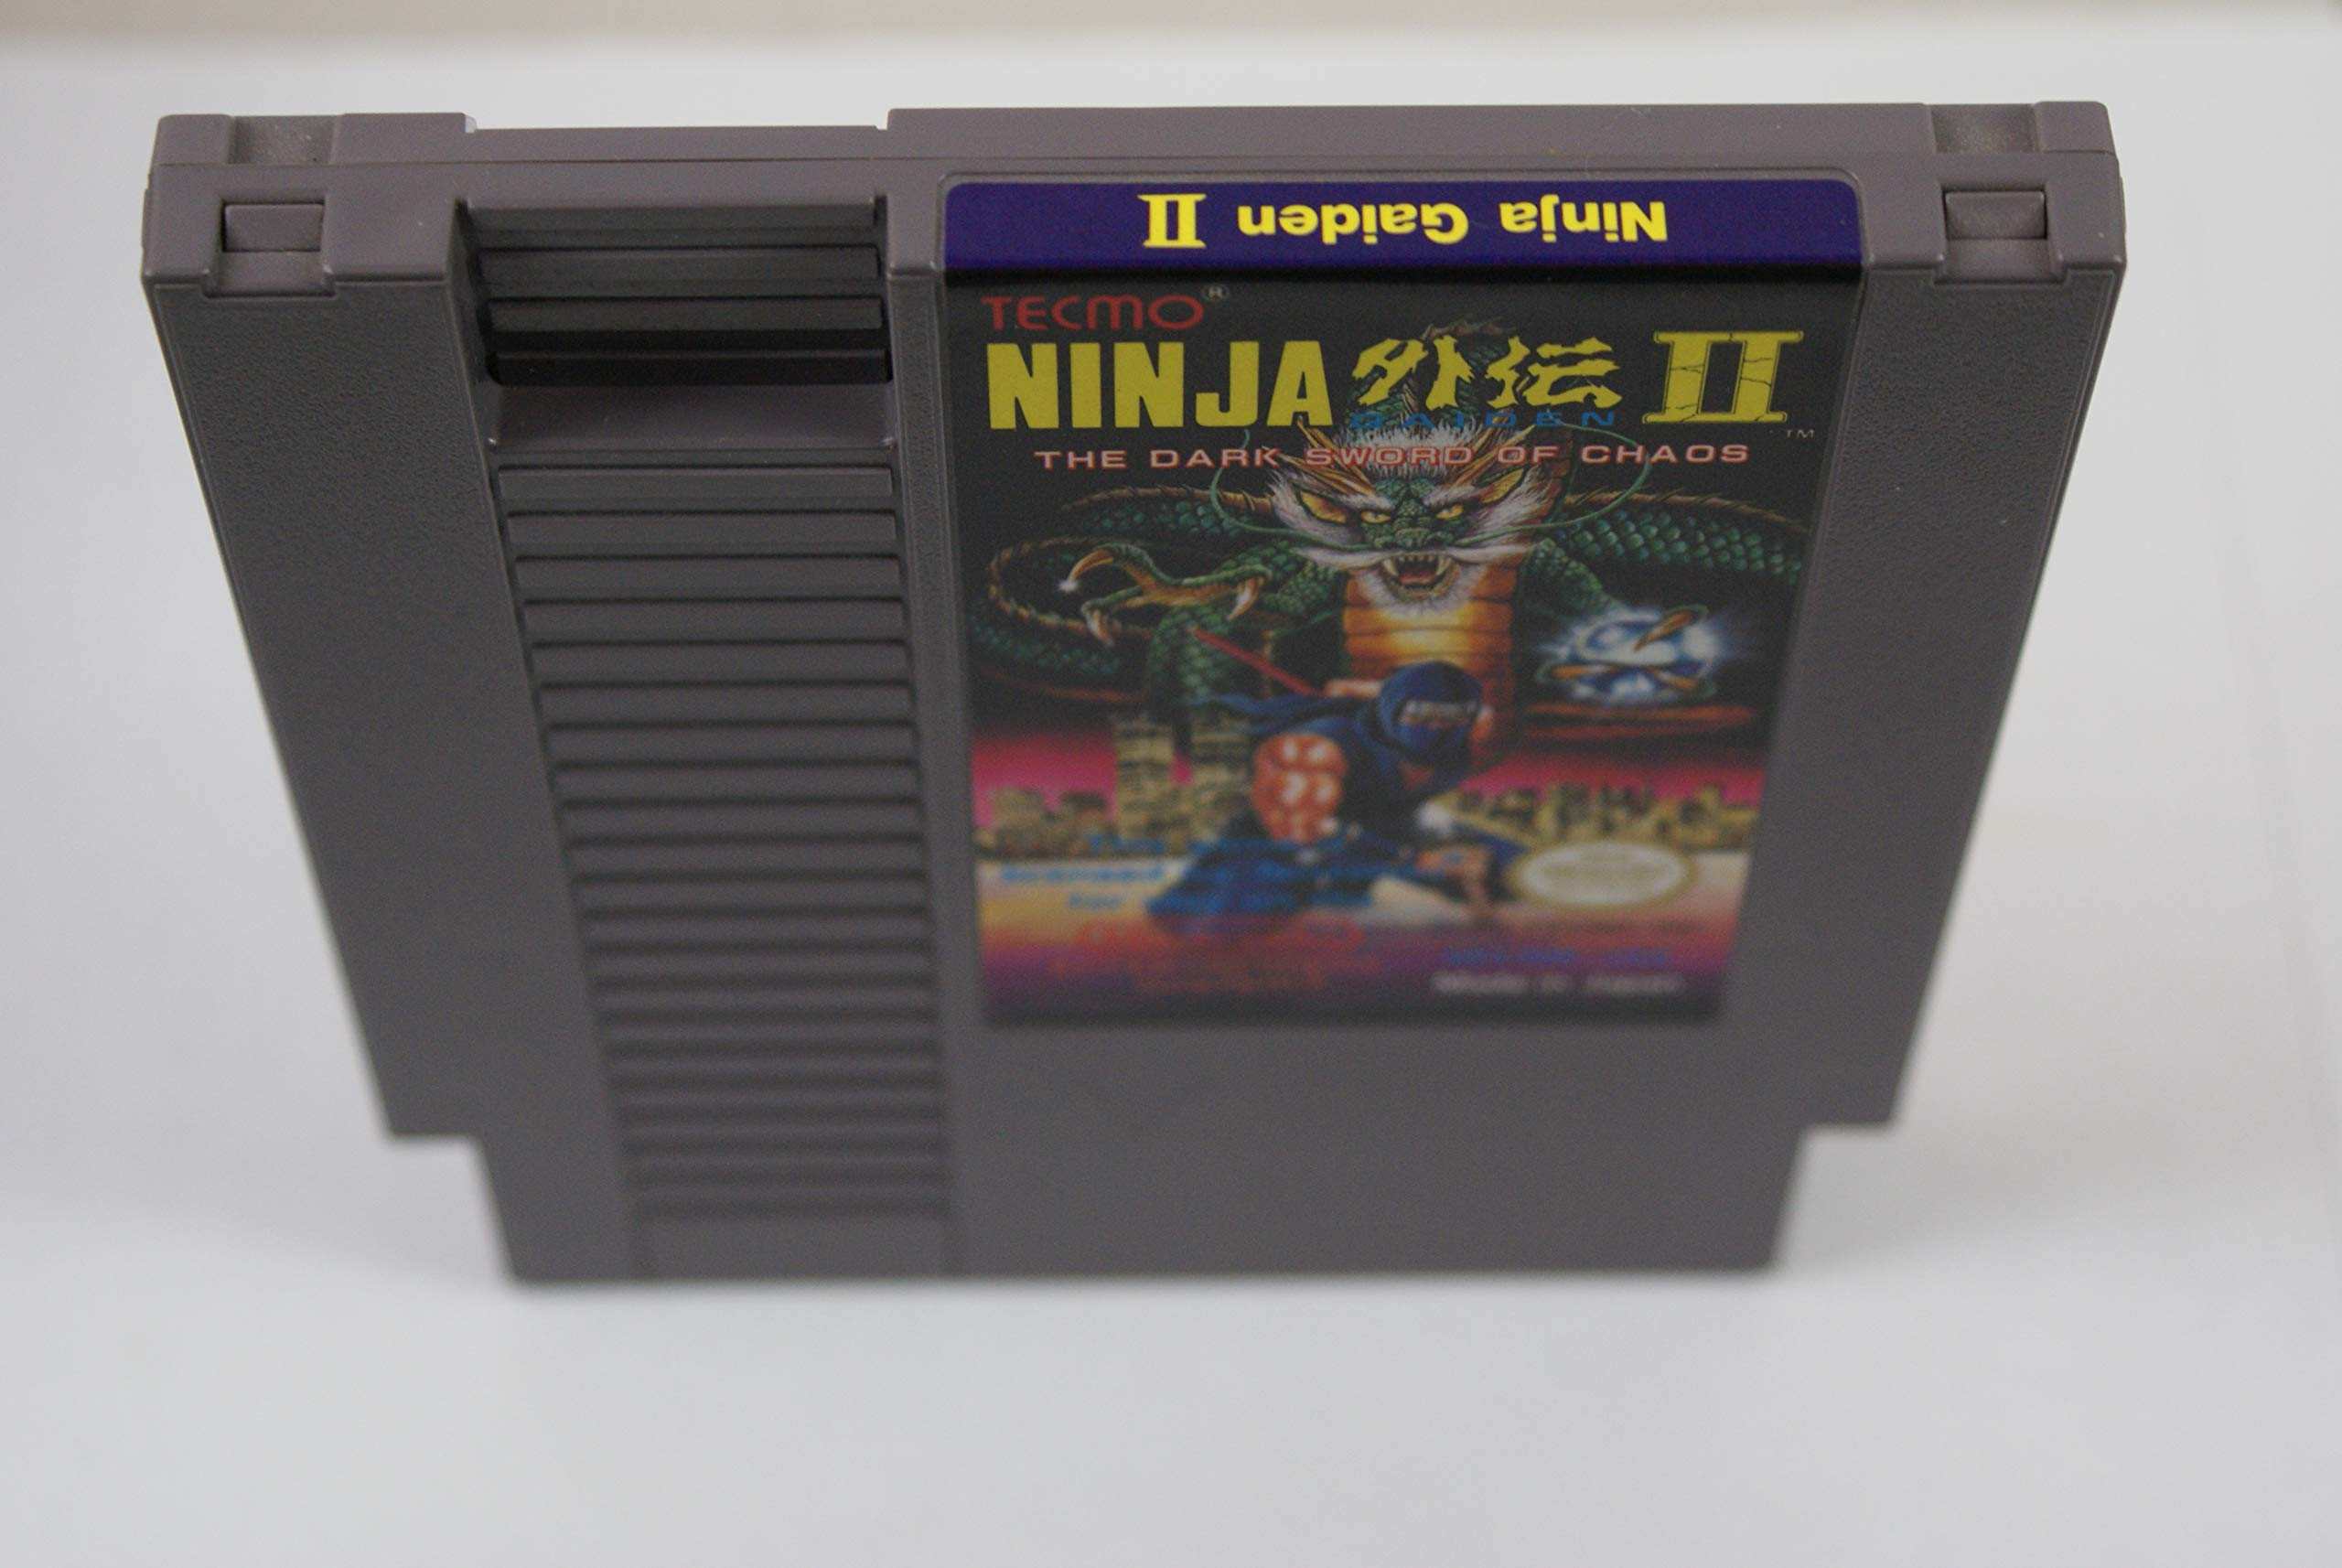 Amazon.com: NES Ninja Gaiden II Video Game USED: Video Games